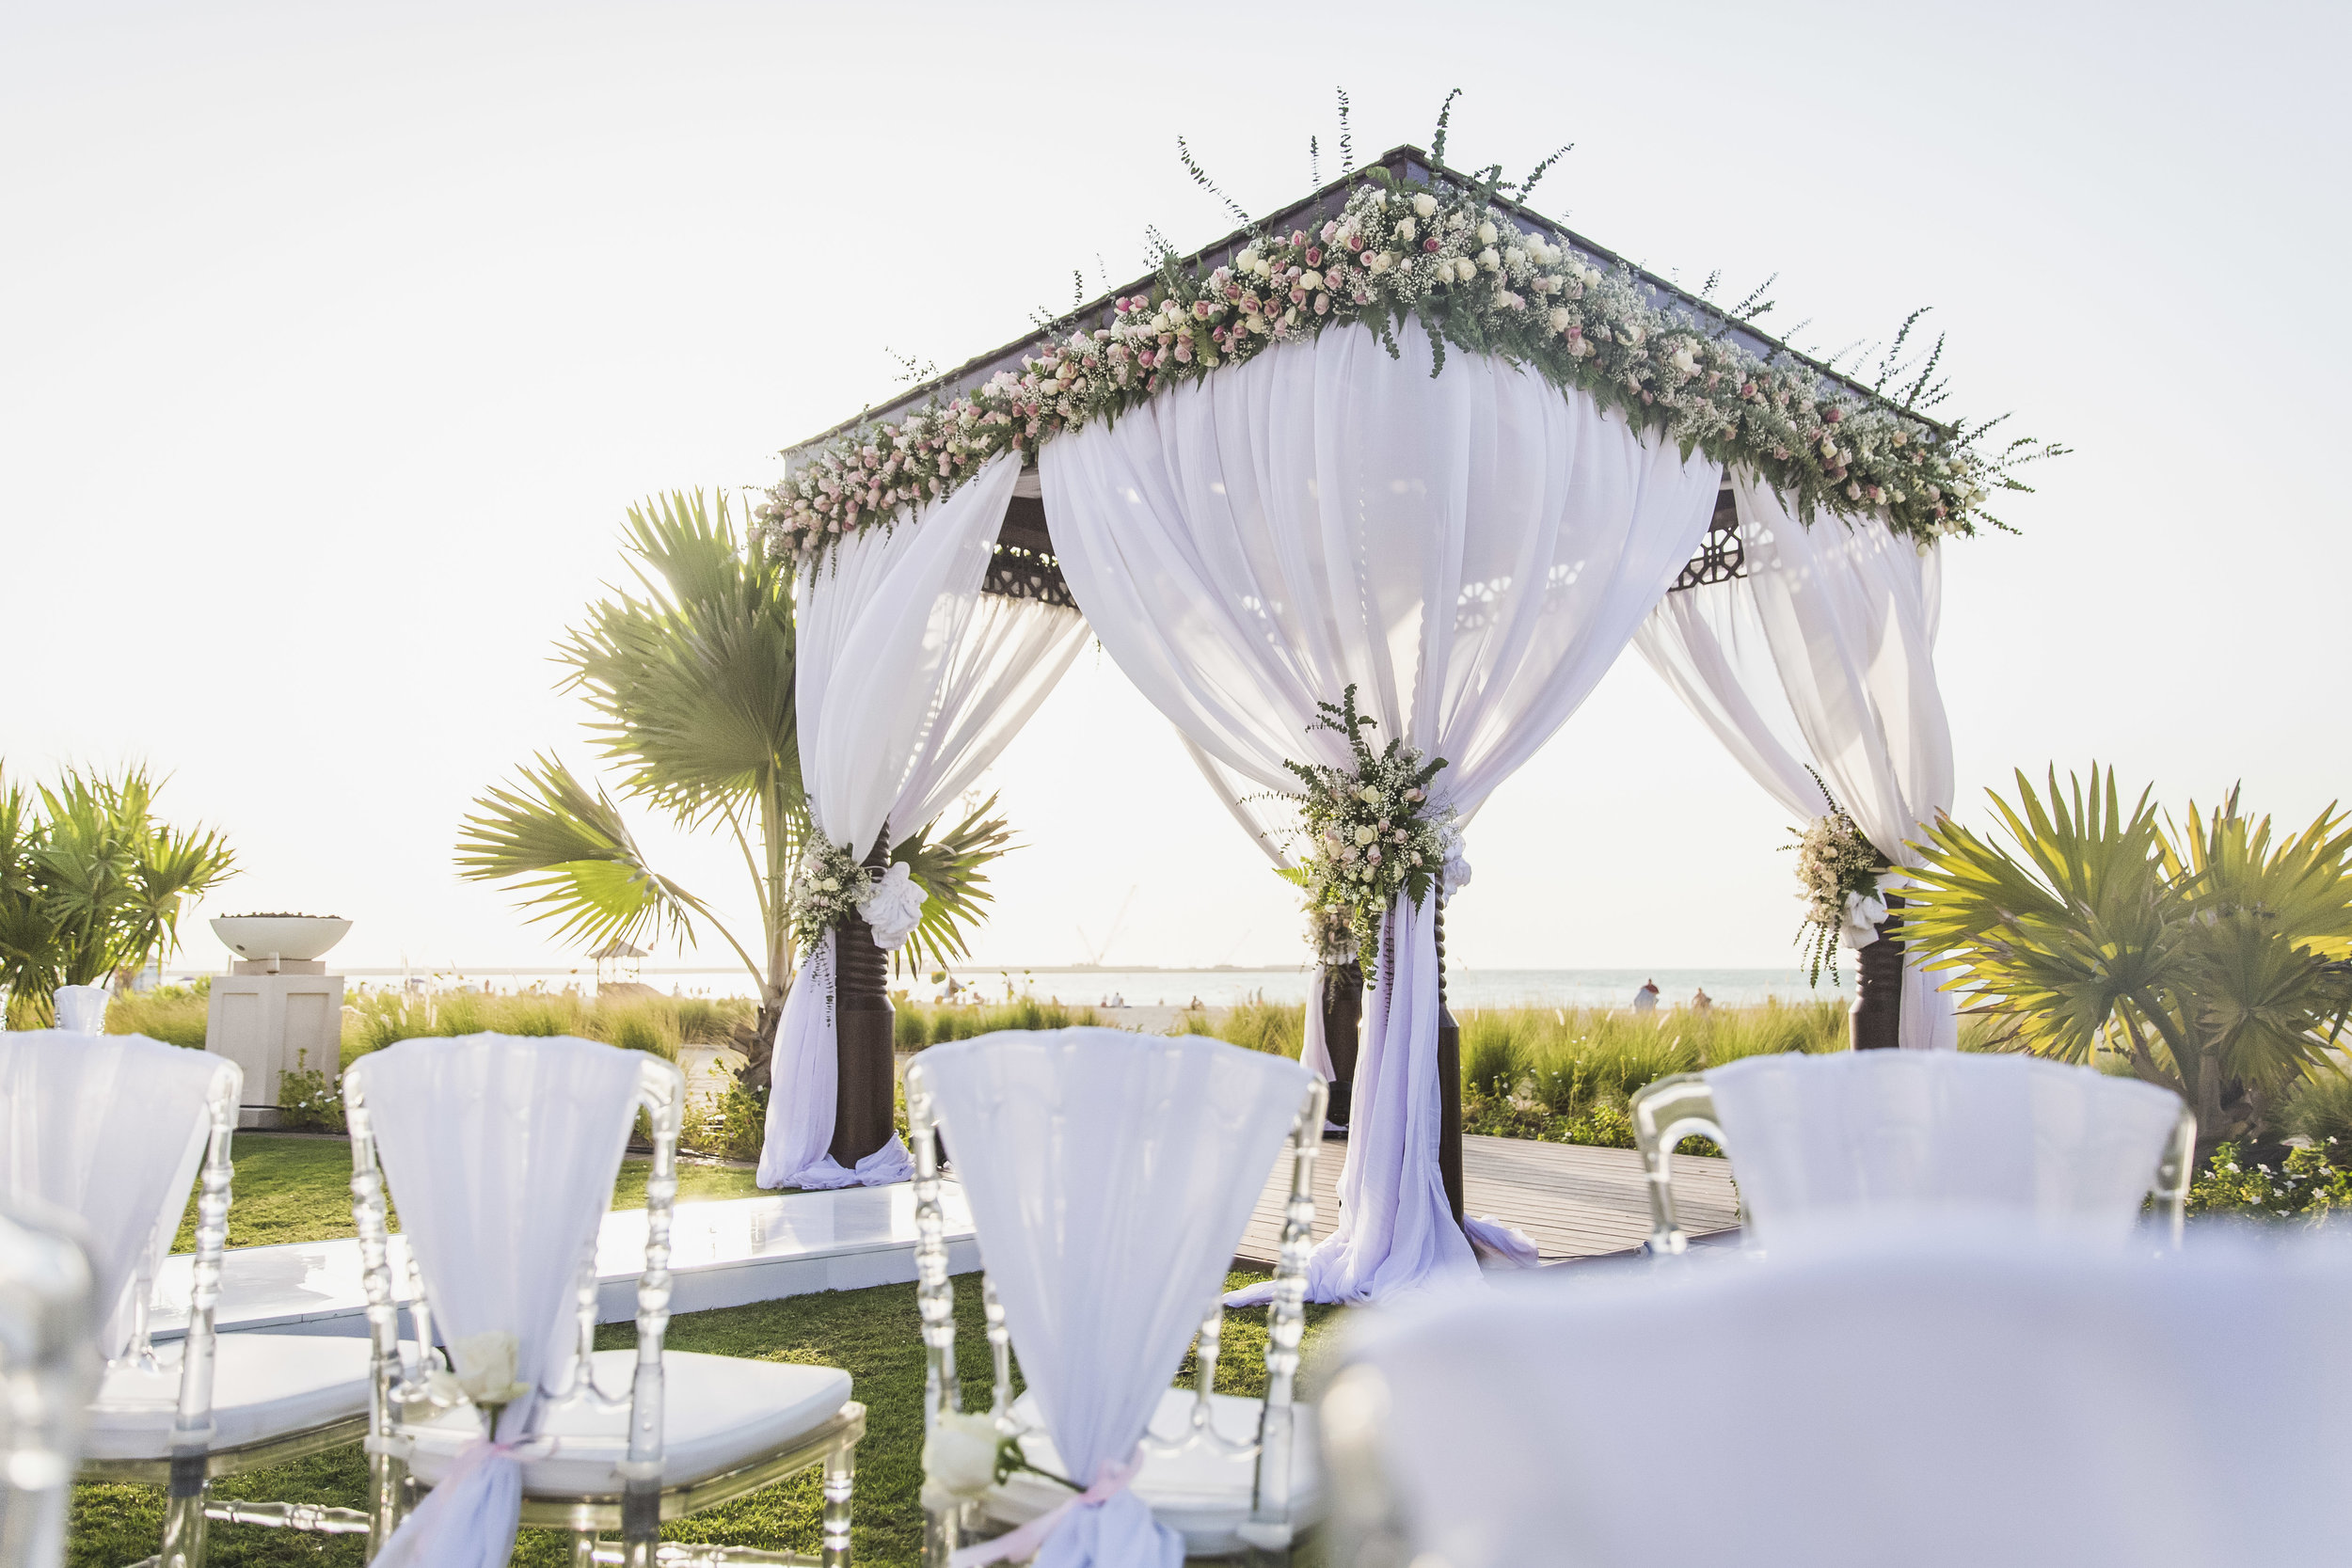 Outdoor wedding ceremony setting with chairs and podium